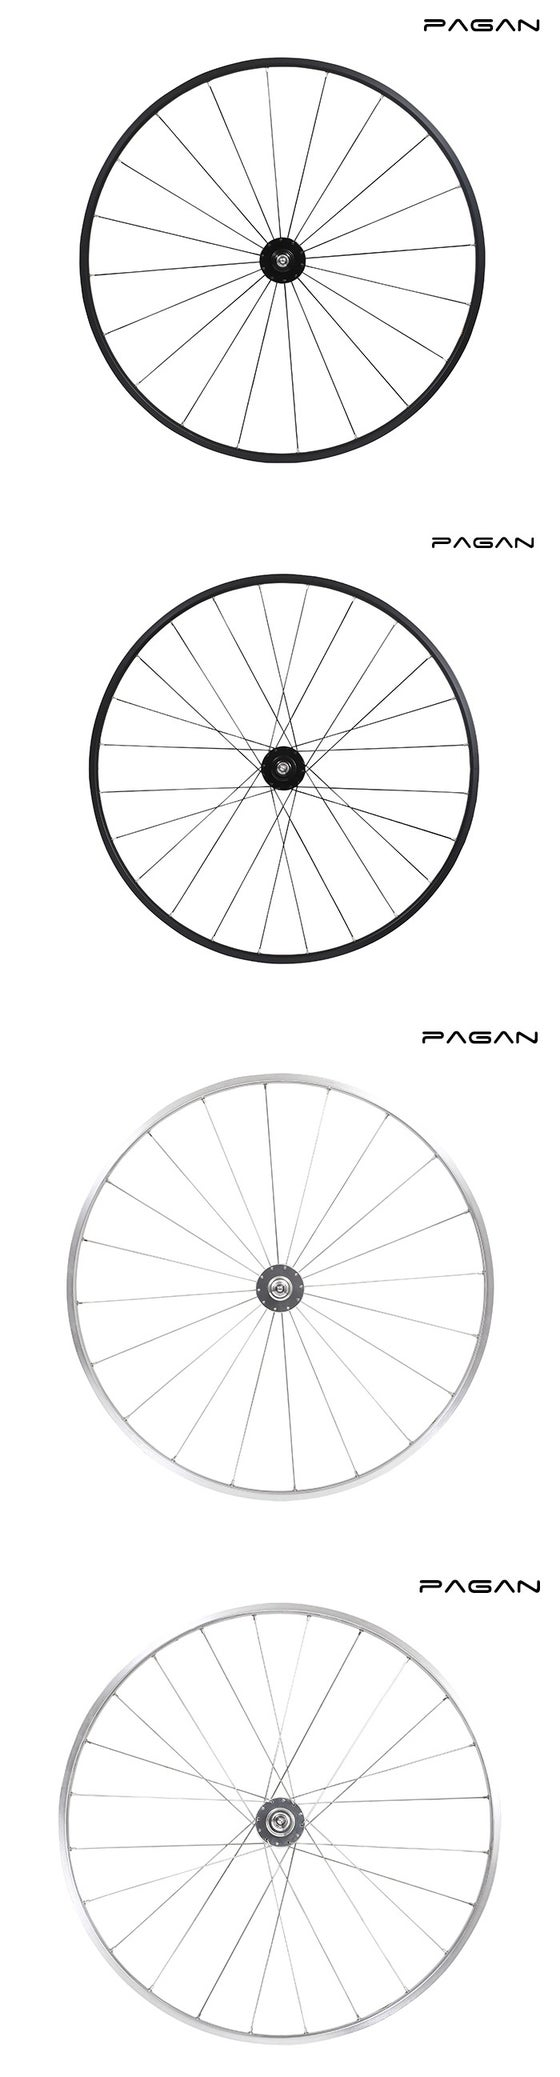 Image of PAGAN FIXED GEAR PISTA TRACK M14 Wheelset